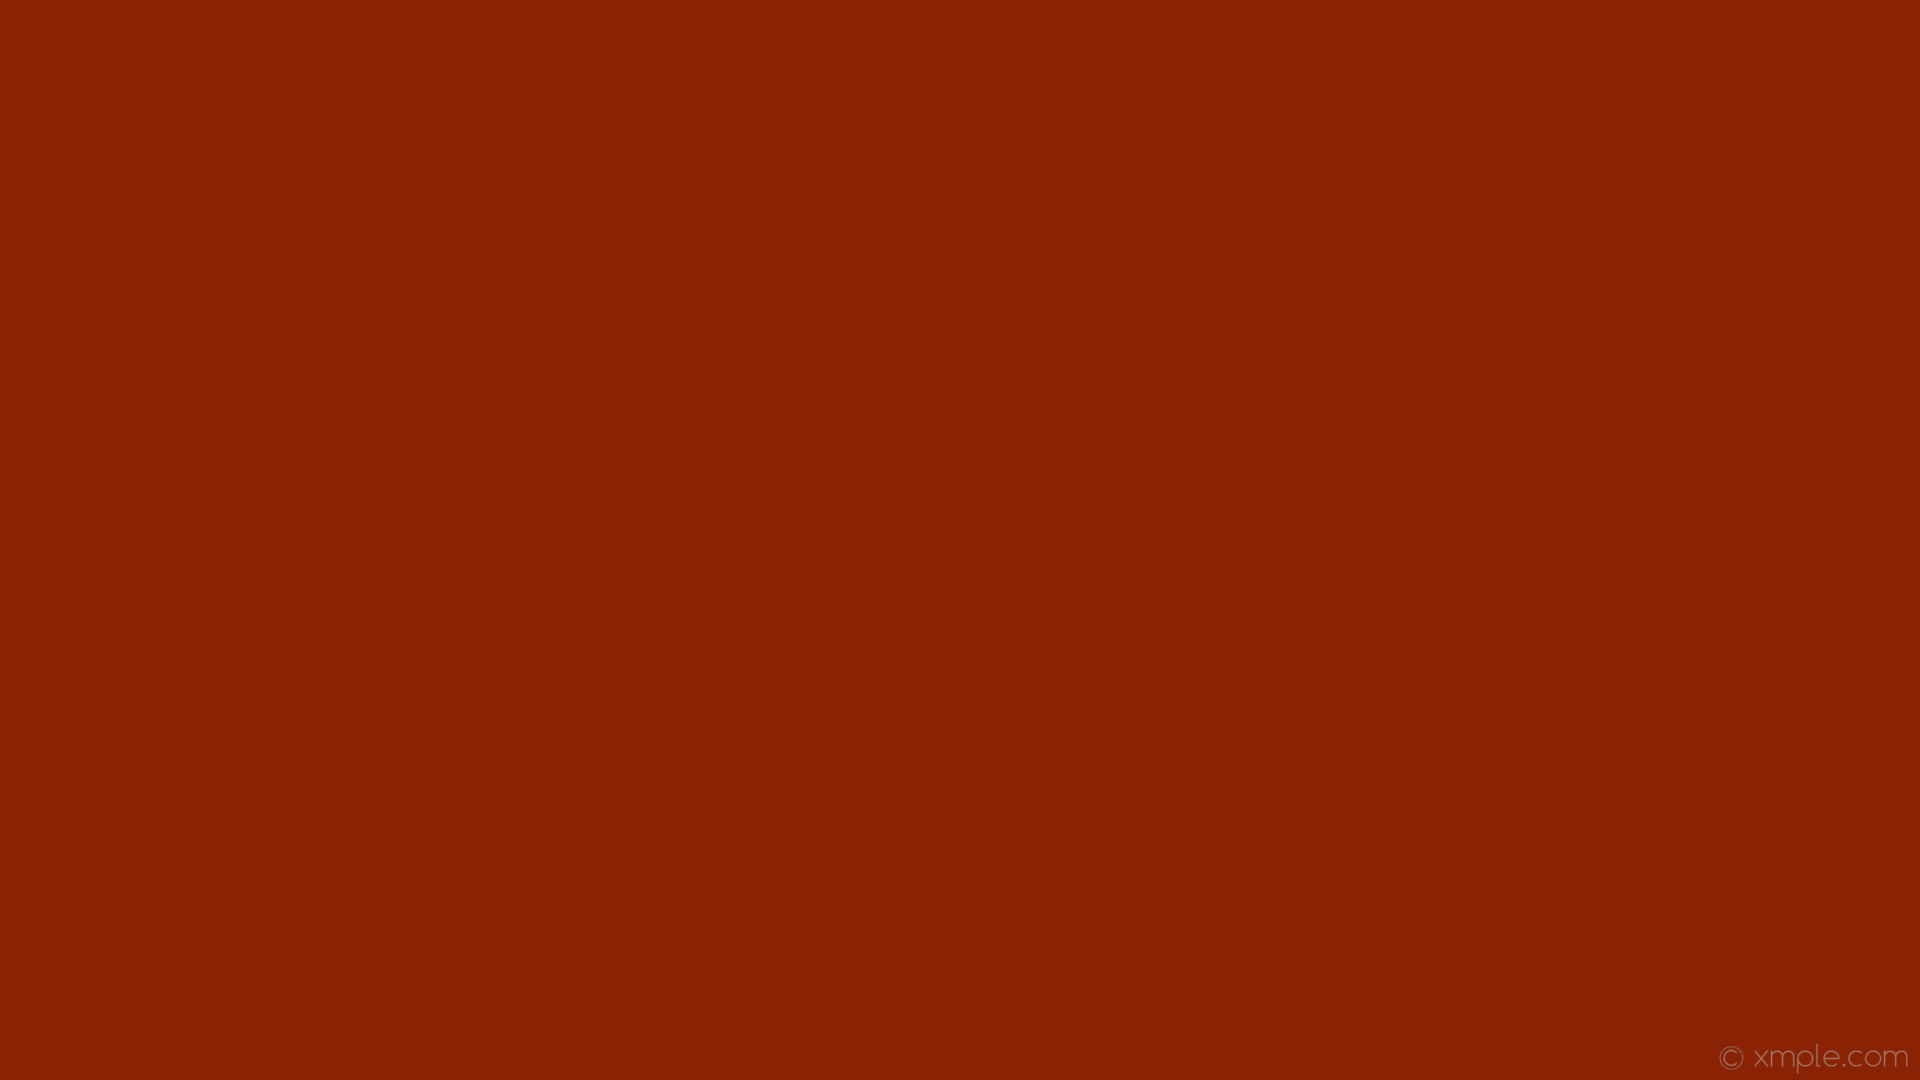 1920x1080 wallpaper red plain one colour single solid color #8a2304